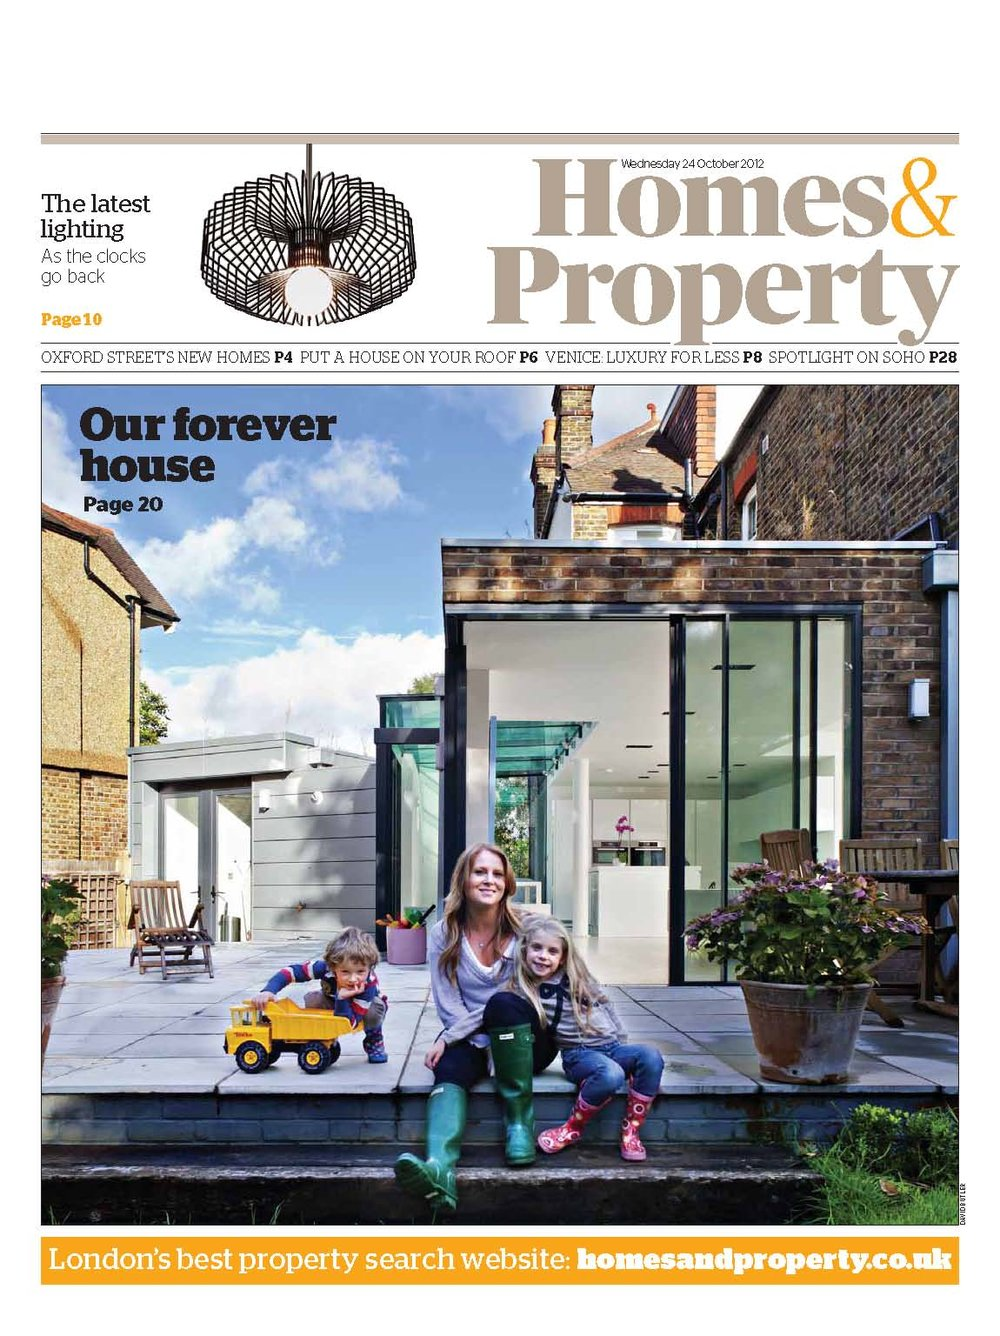 Homes & Property, 2012